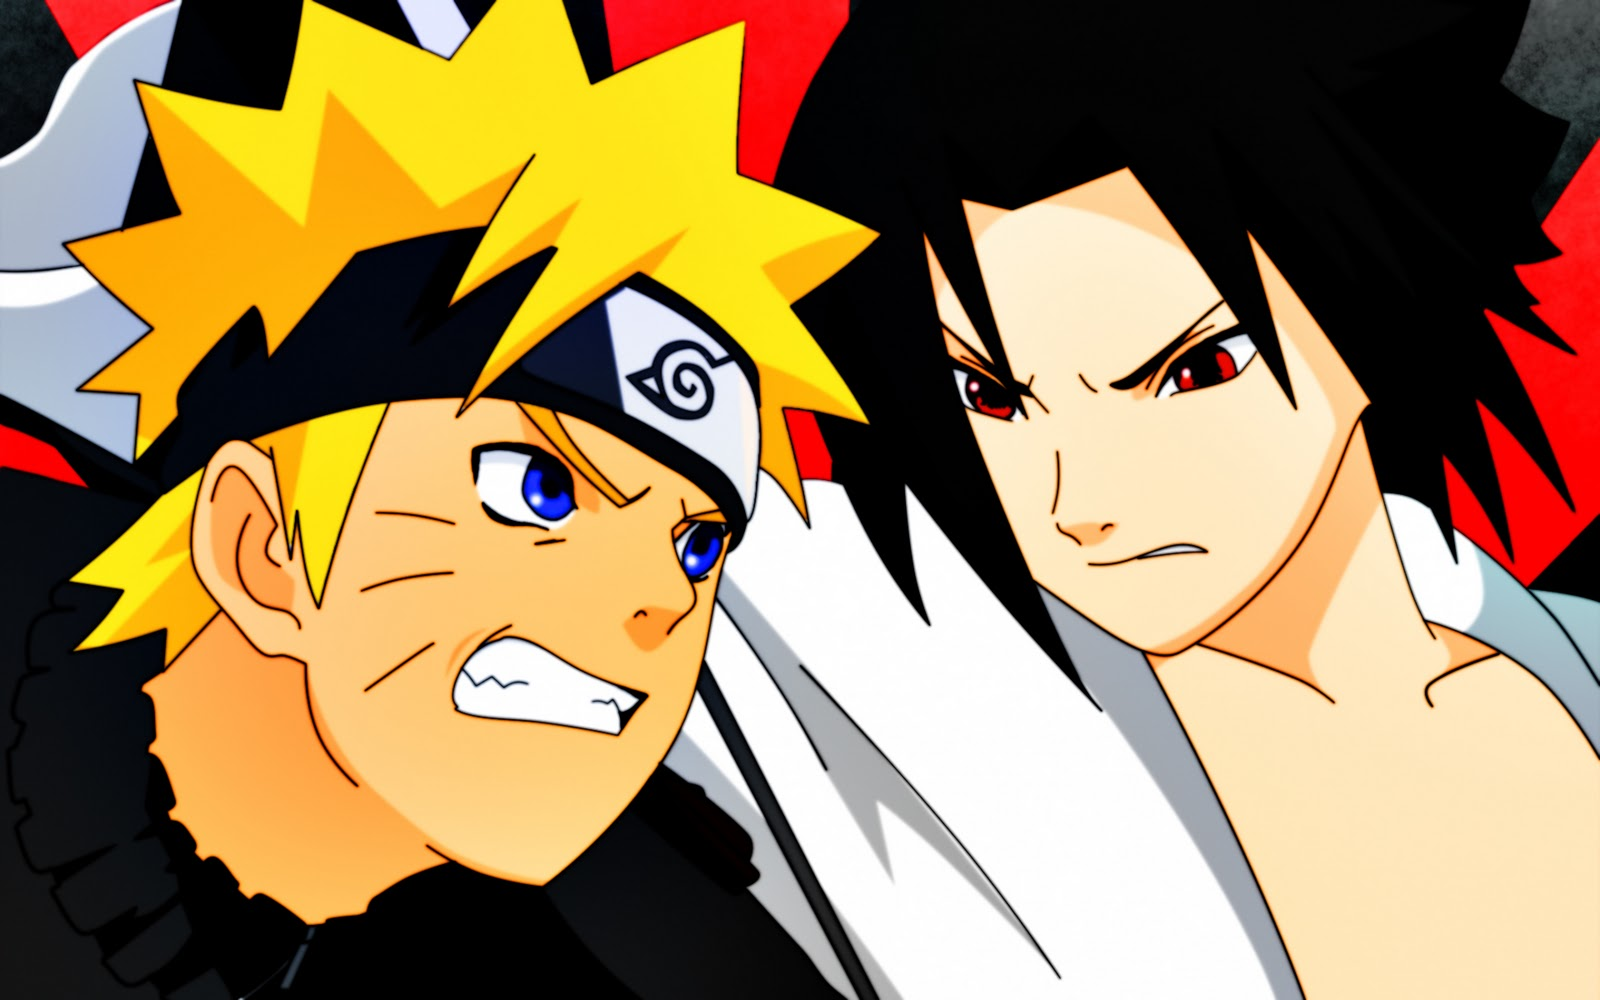 http://4.bp.blogspot.com/-F0qSttRXnV0/TyAyYj0-tpI/AAAAAAAABwE/QyycgF2l6EY/s1600/naruto_and_sasuke_wallpaper_by_pepness-d3xx1sr.jpg